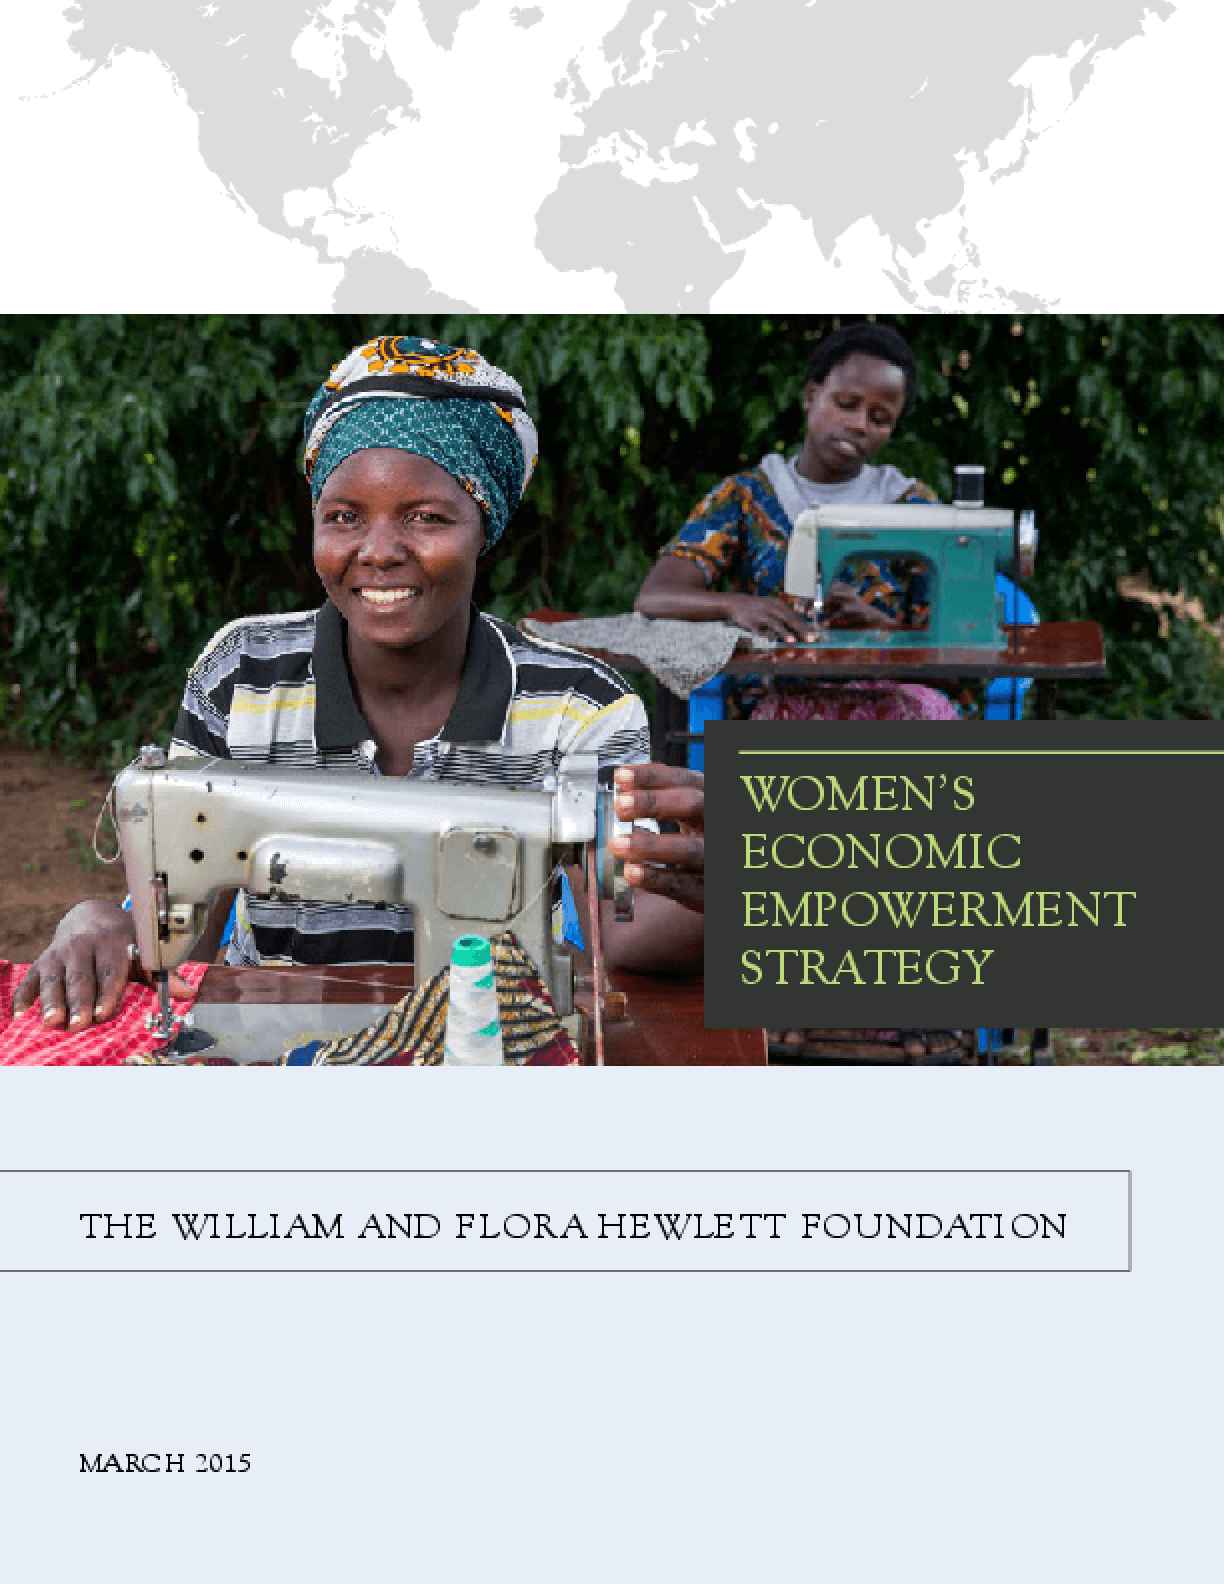 Women's Economic Empowerment Strategy